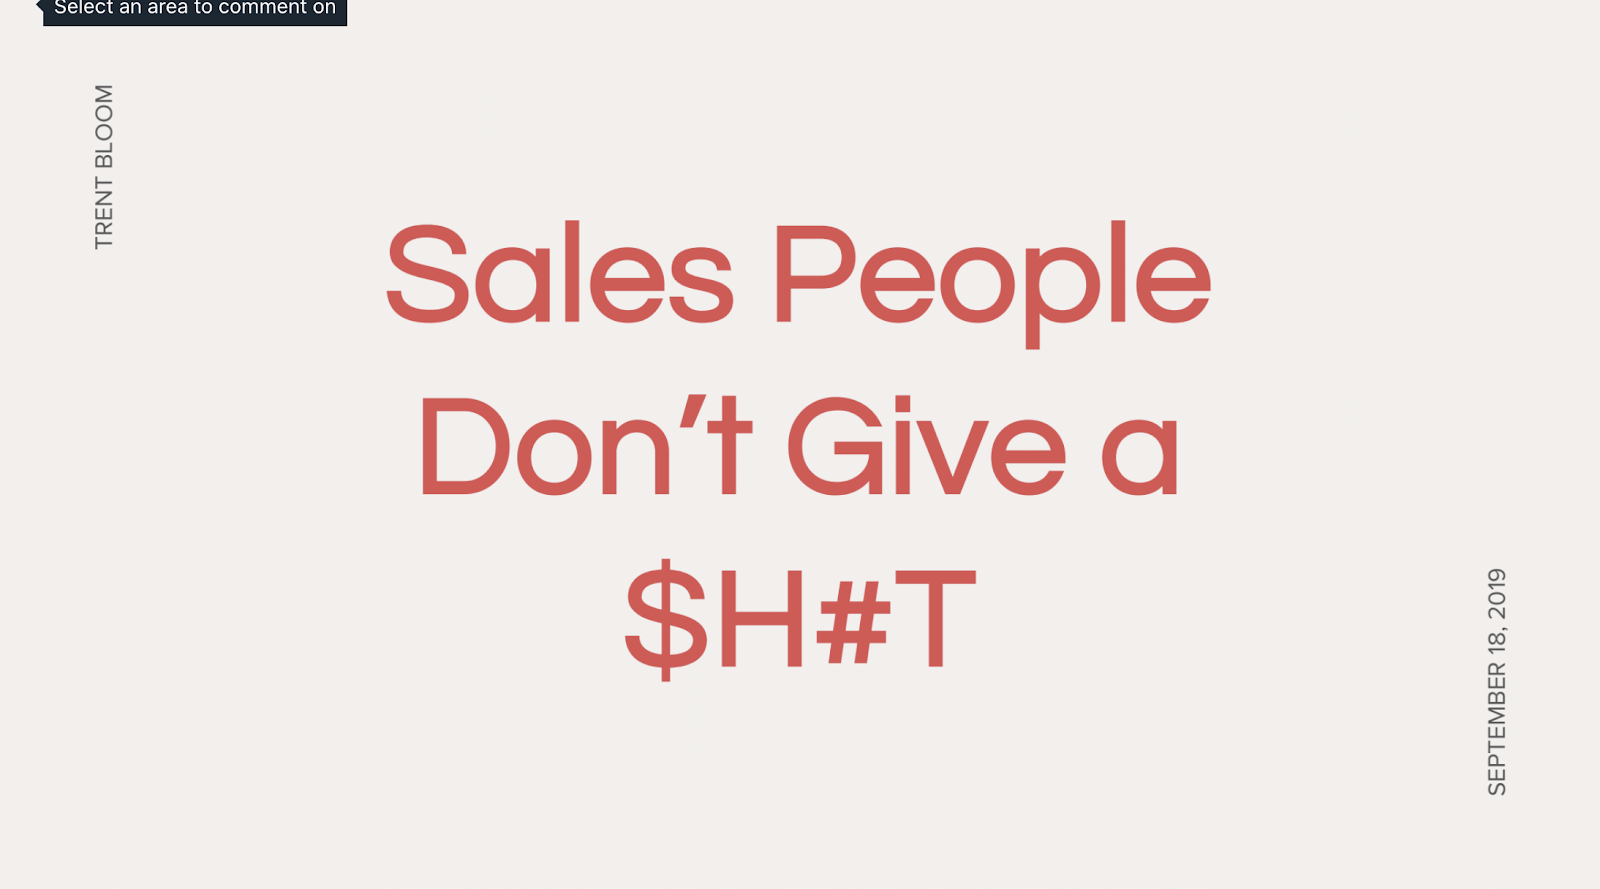 salespeople don't give a s**t